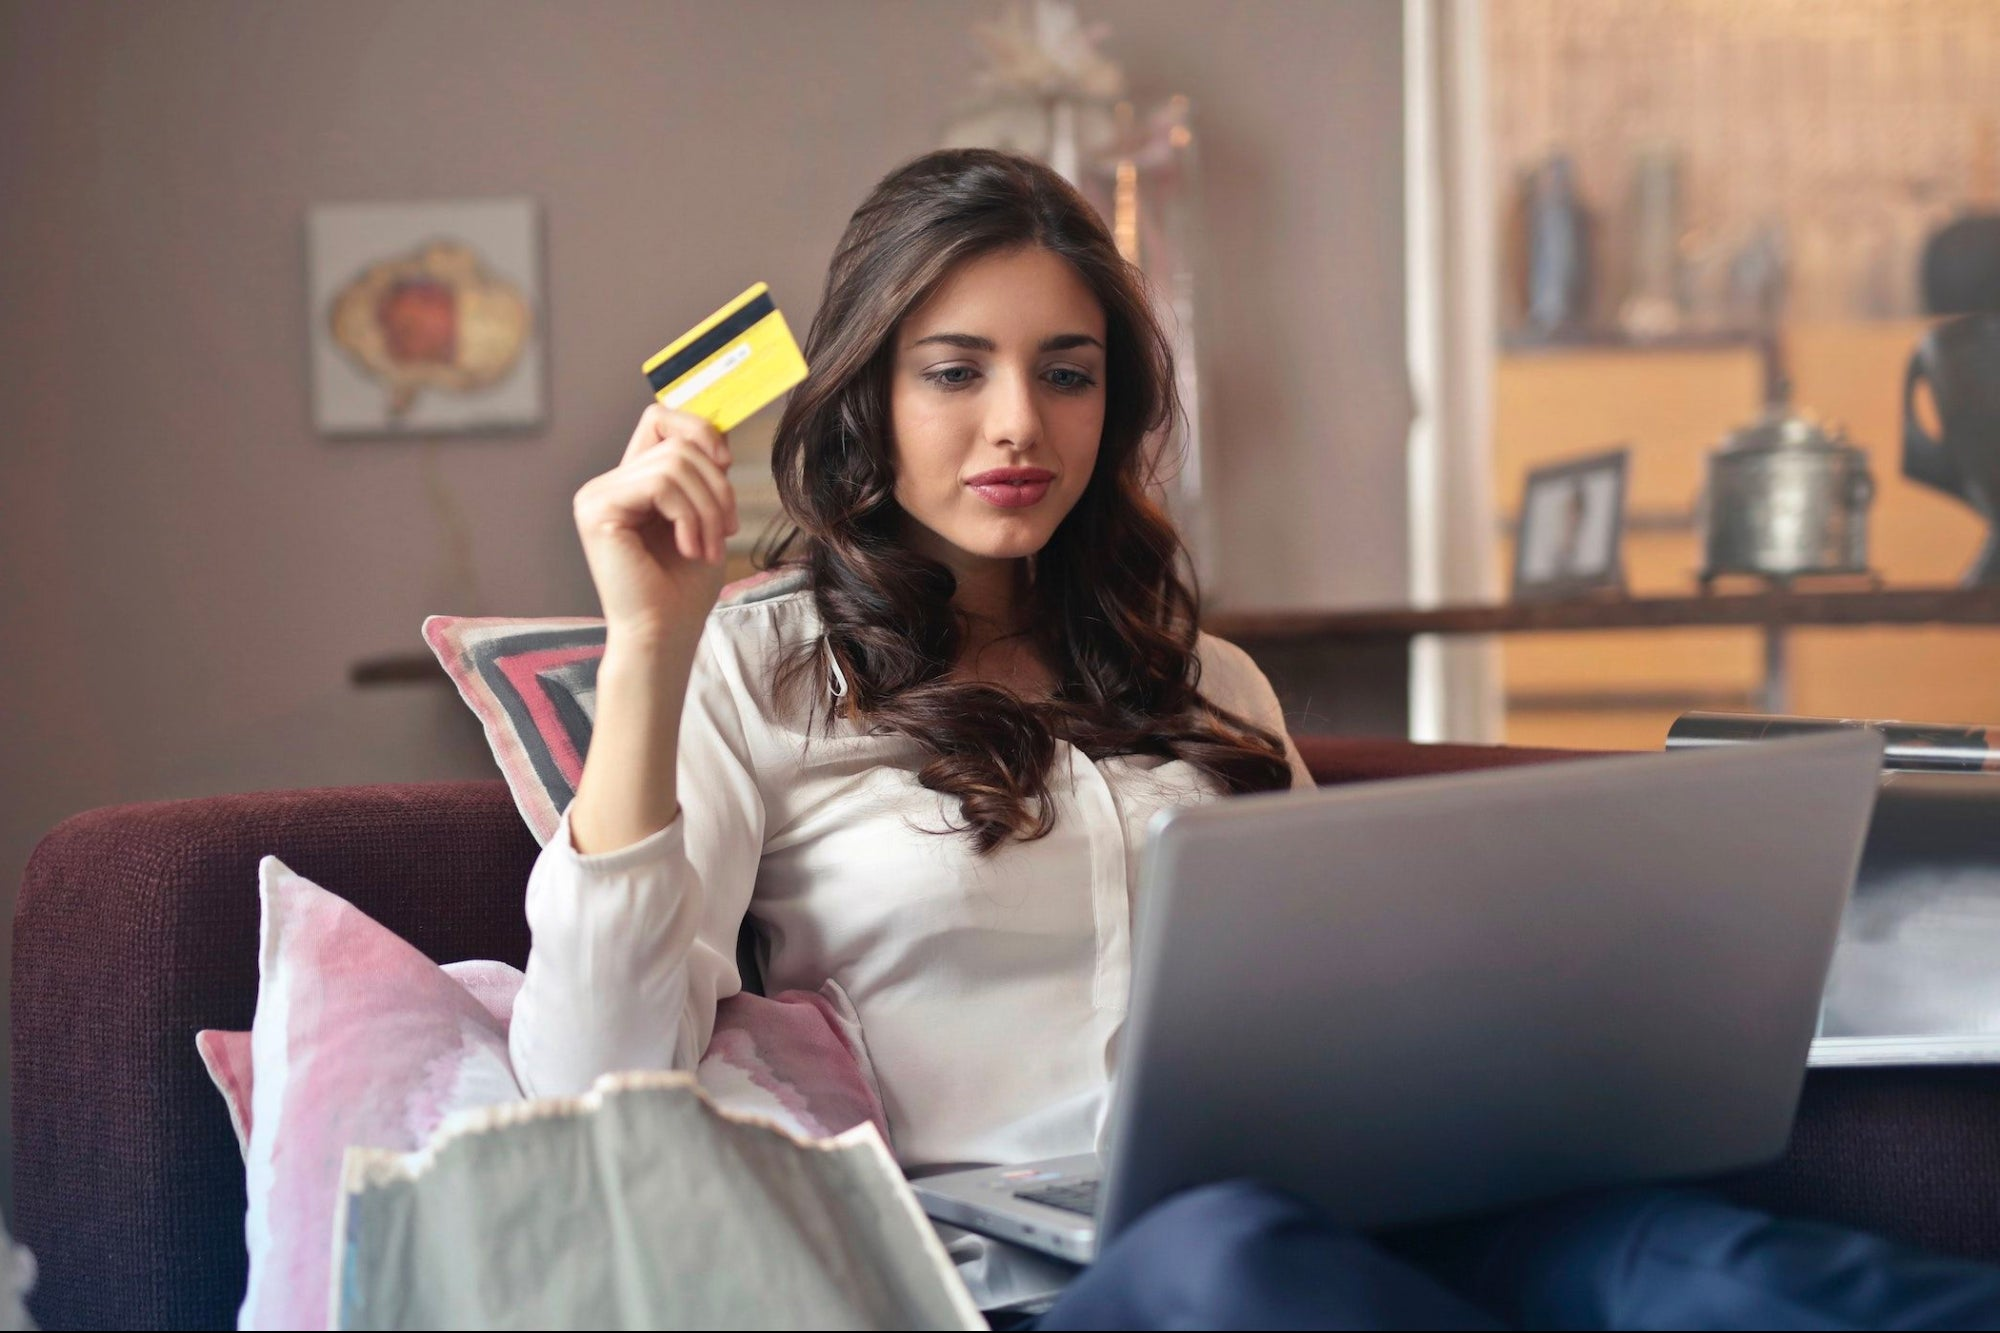 14 Tips for Safe Online Shopping